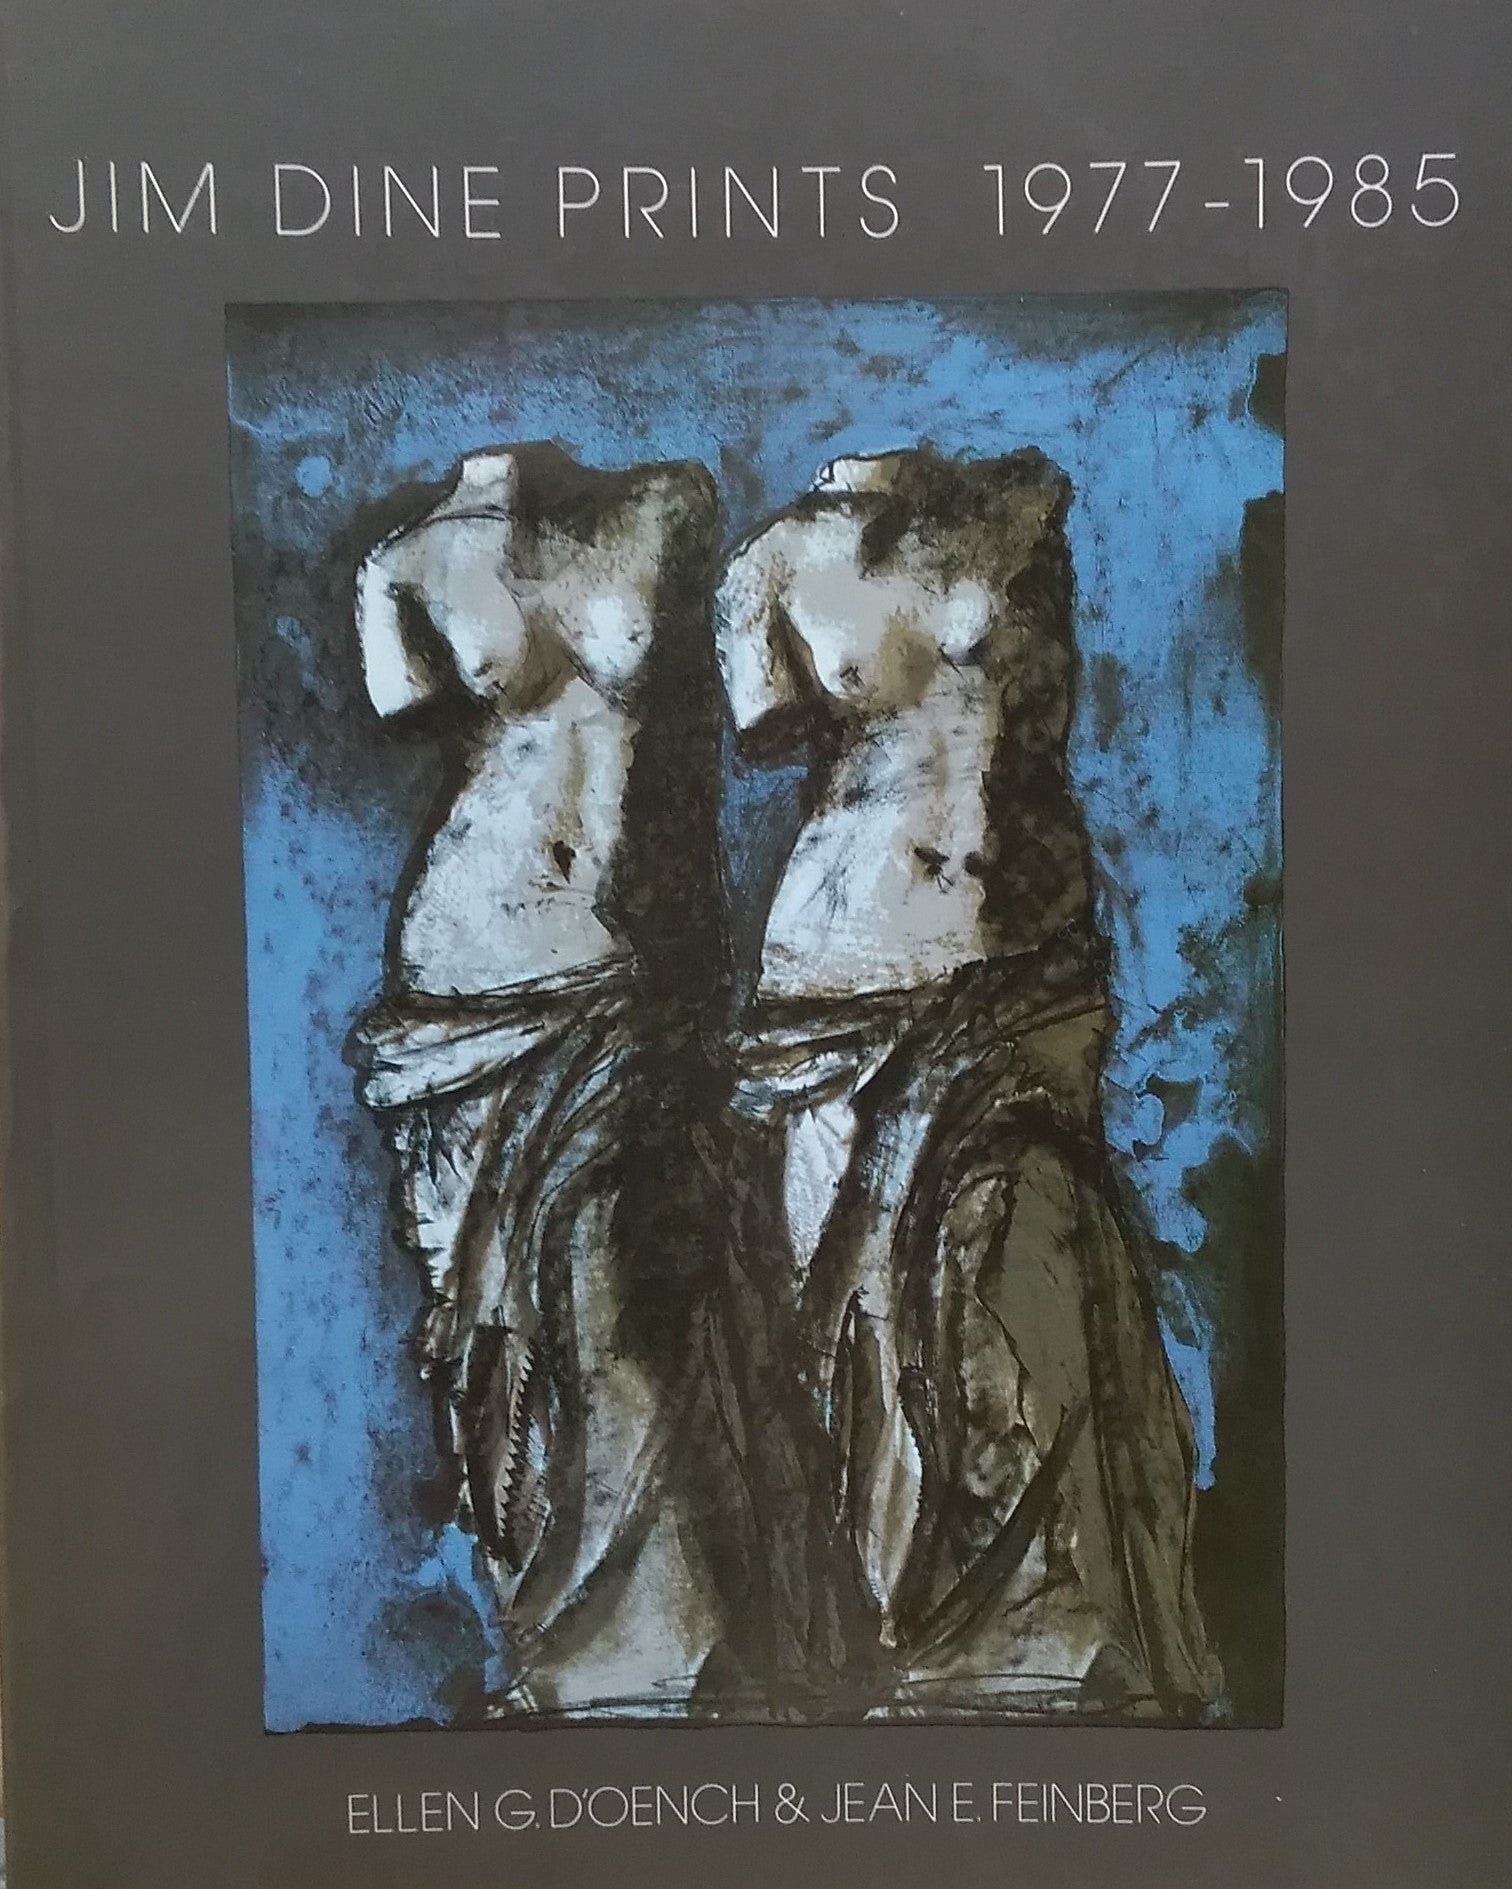 JIM DINE PRINTS 1977-1985 Ellen D'Oench, Jean E. Feinberg Icon Edition